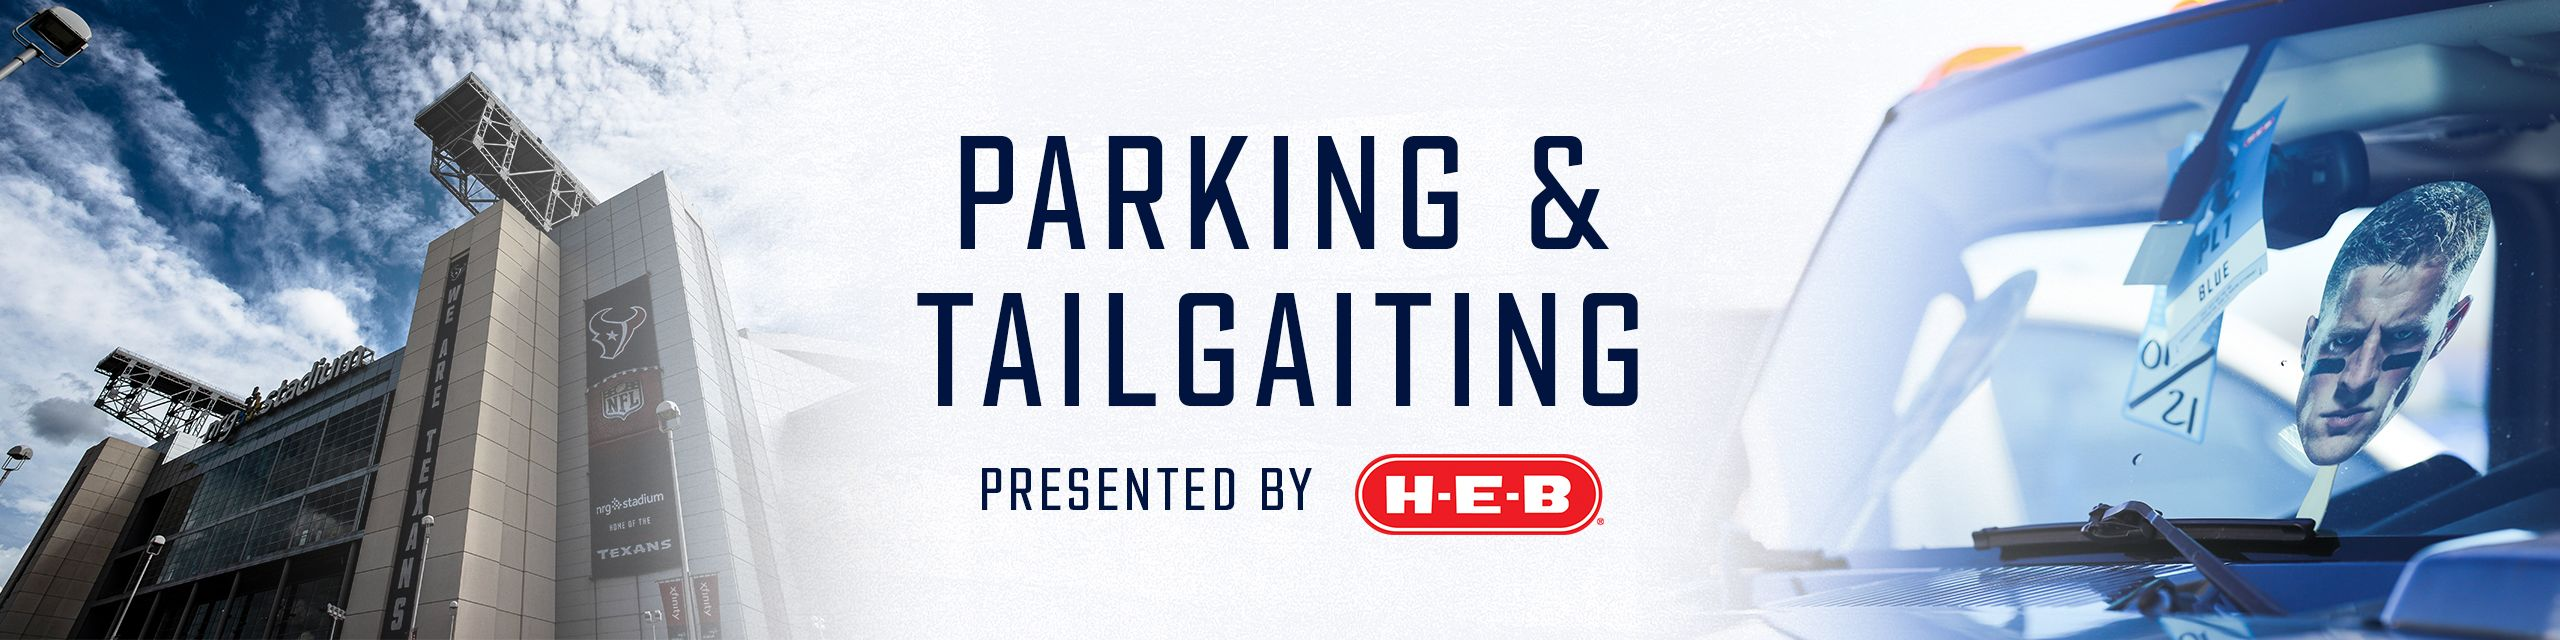 Parking and Tailgating_Hero